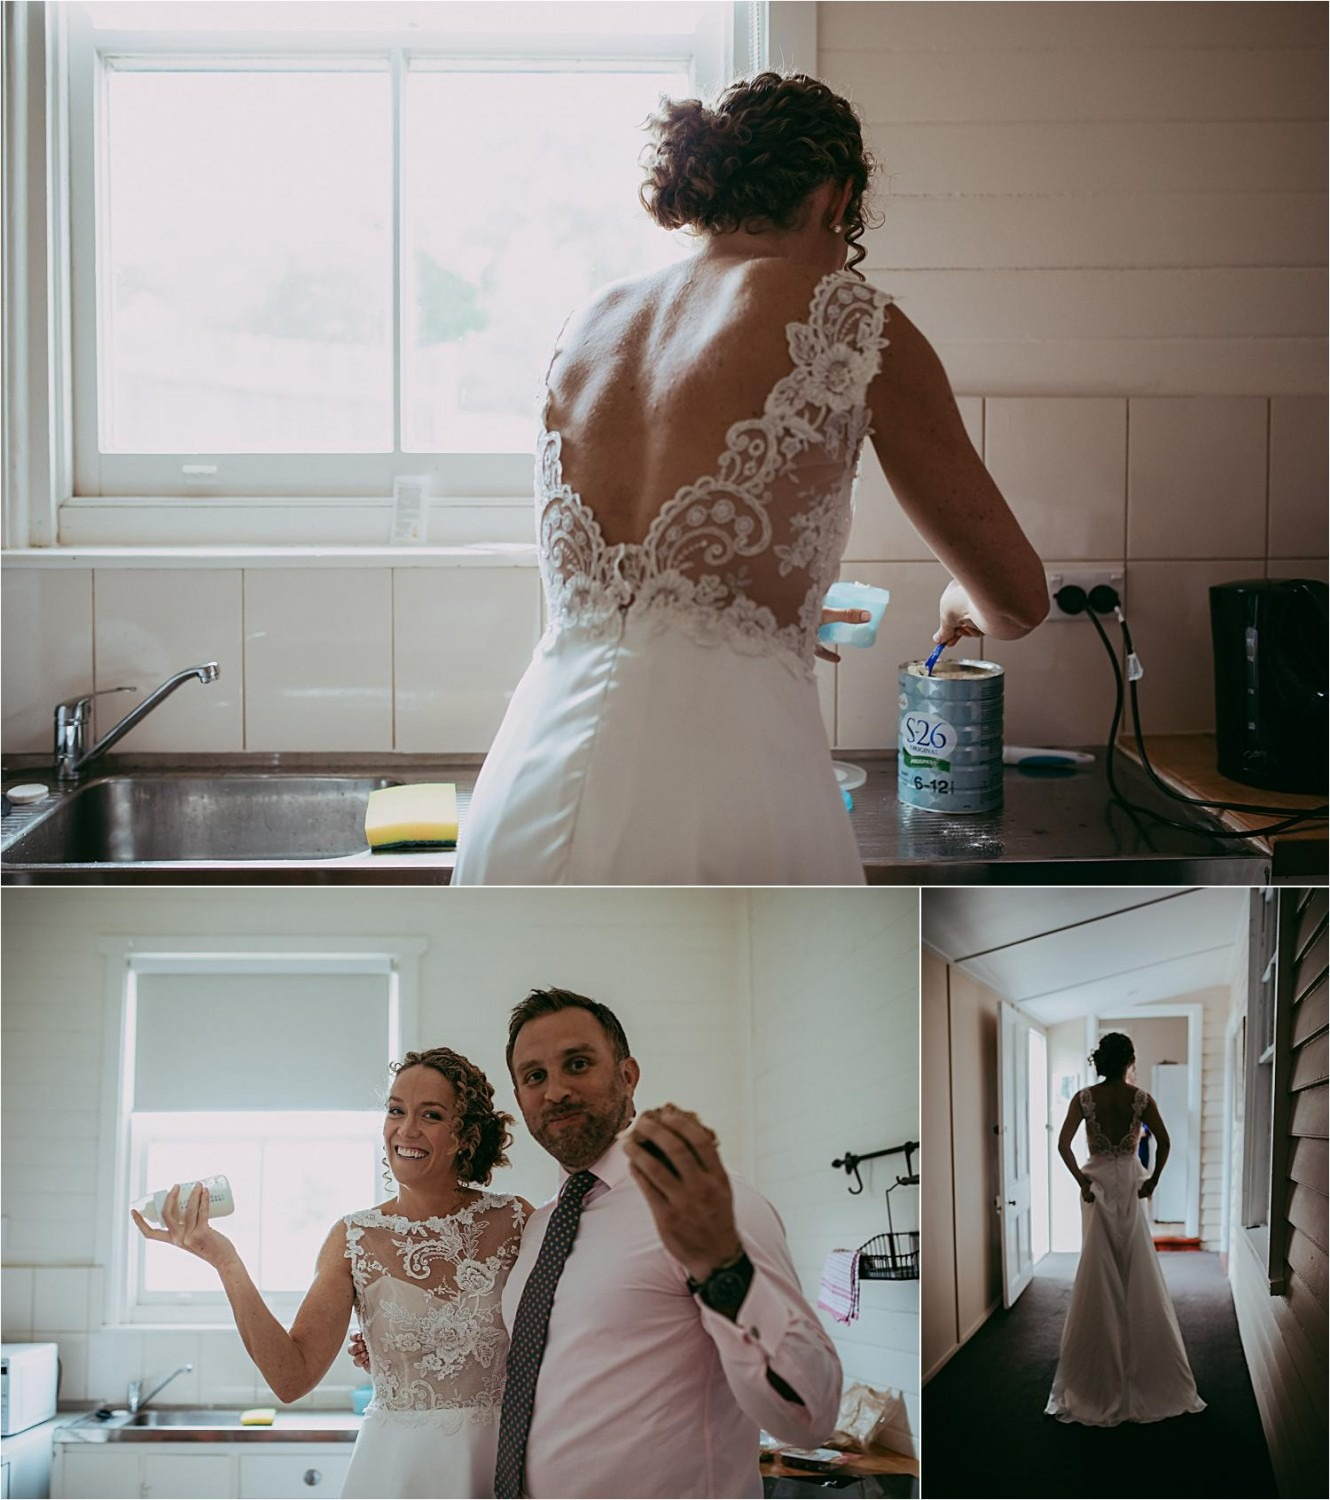 Victoria-&-Evan-Wedding-Carmen-Glenn-Photography-28